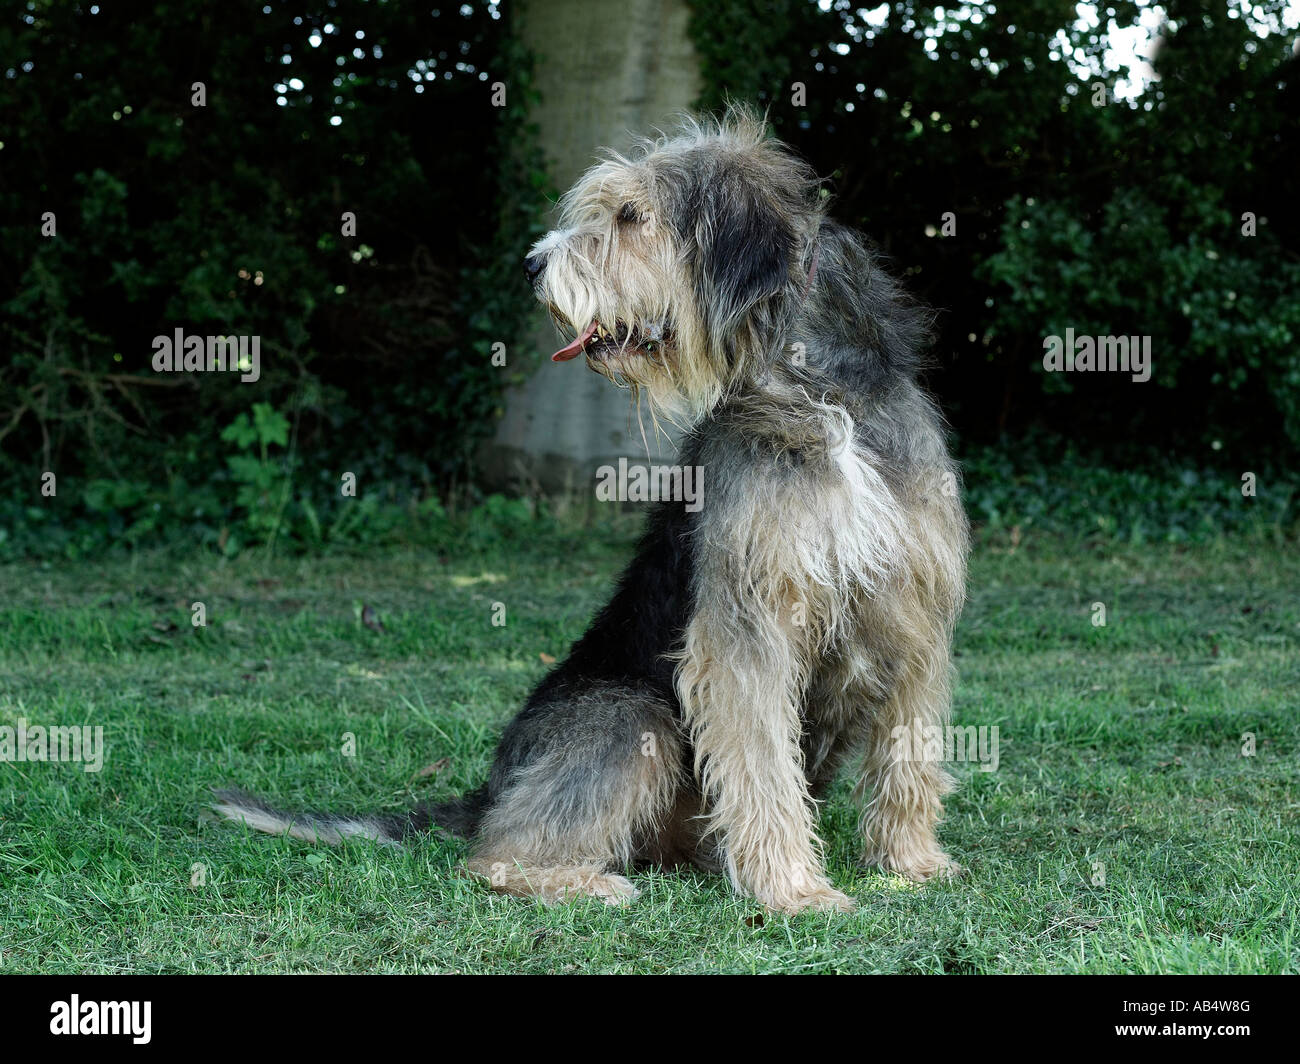 An otterhound standing in the grass. - Stock Image